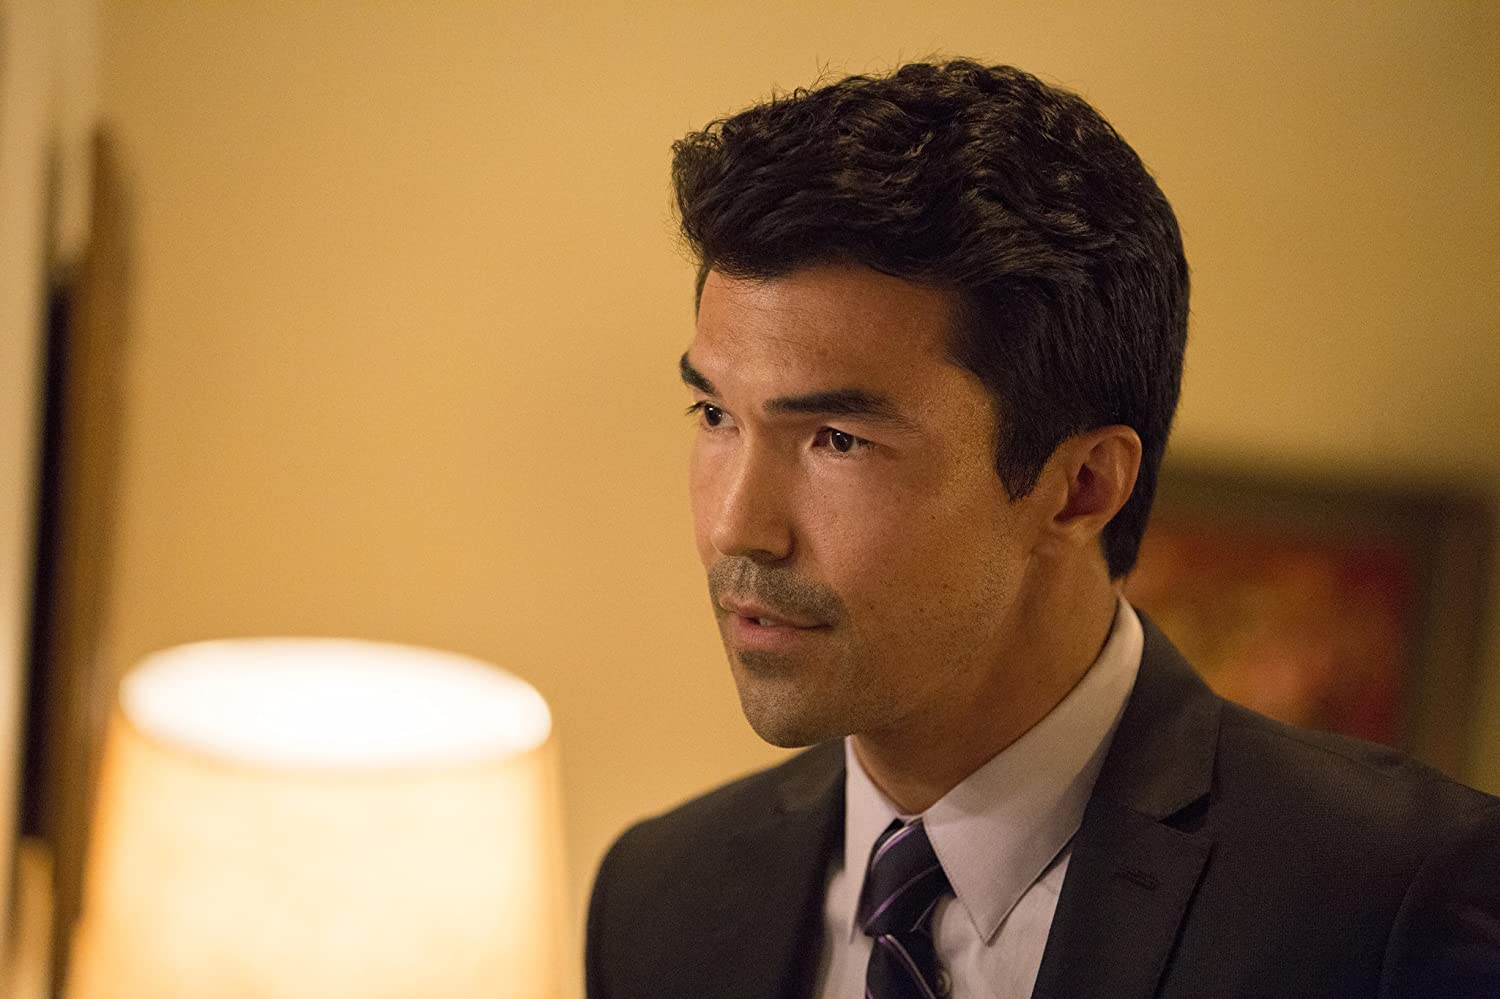 ian anthony dale tumblr